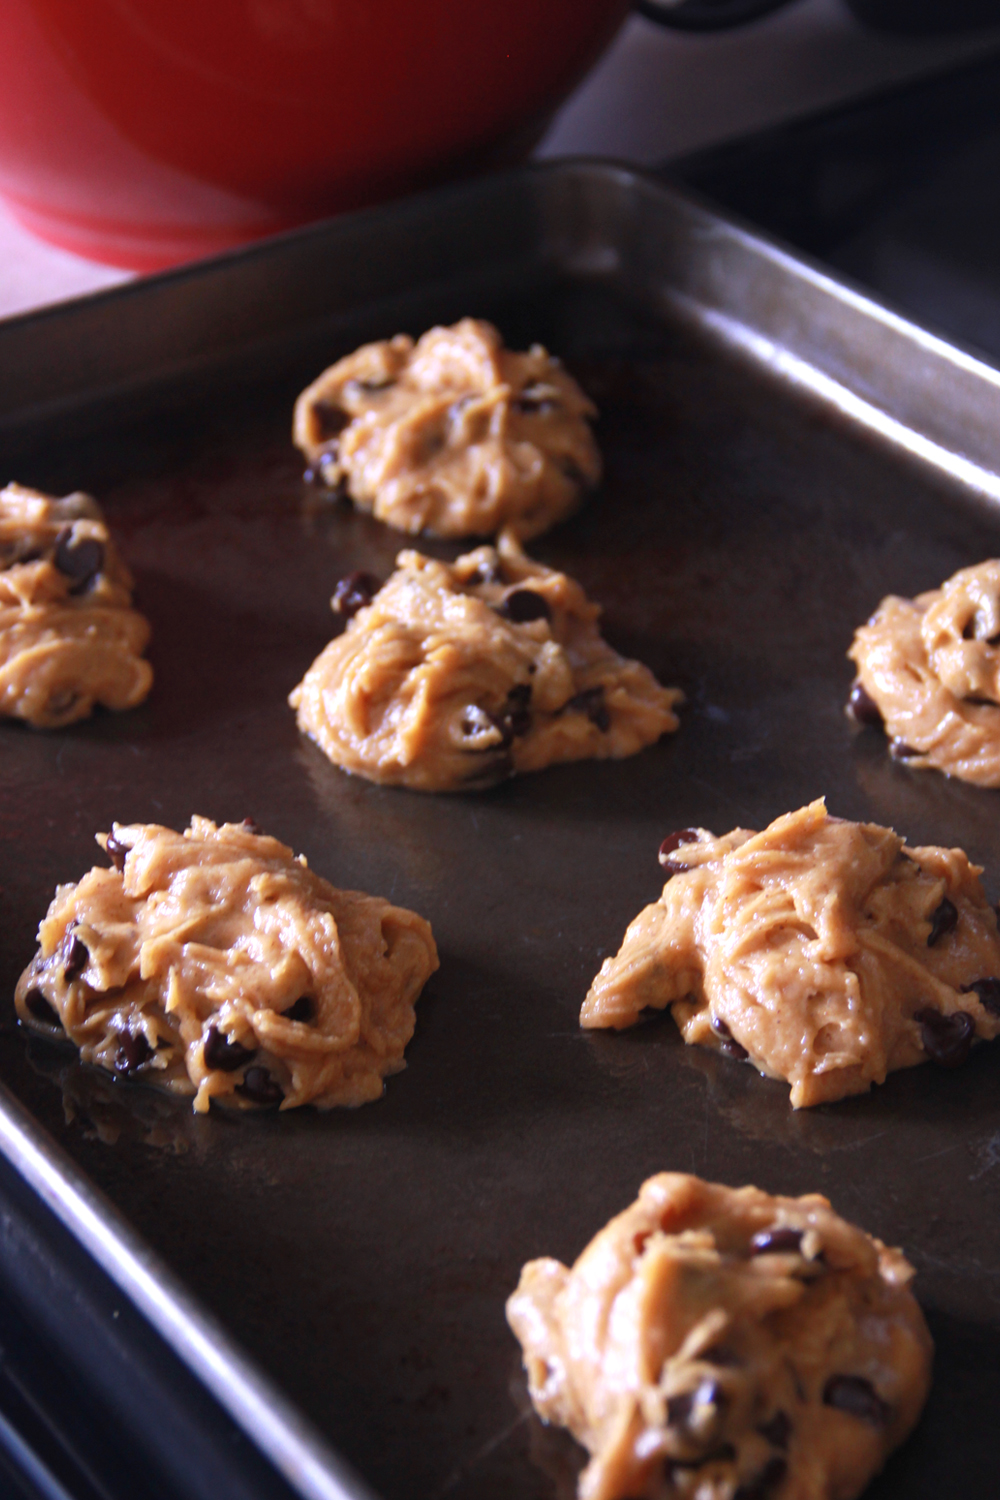 Baking Pumpkin Chocolate Chip Cookies